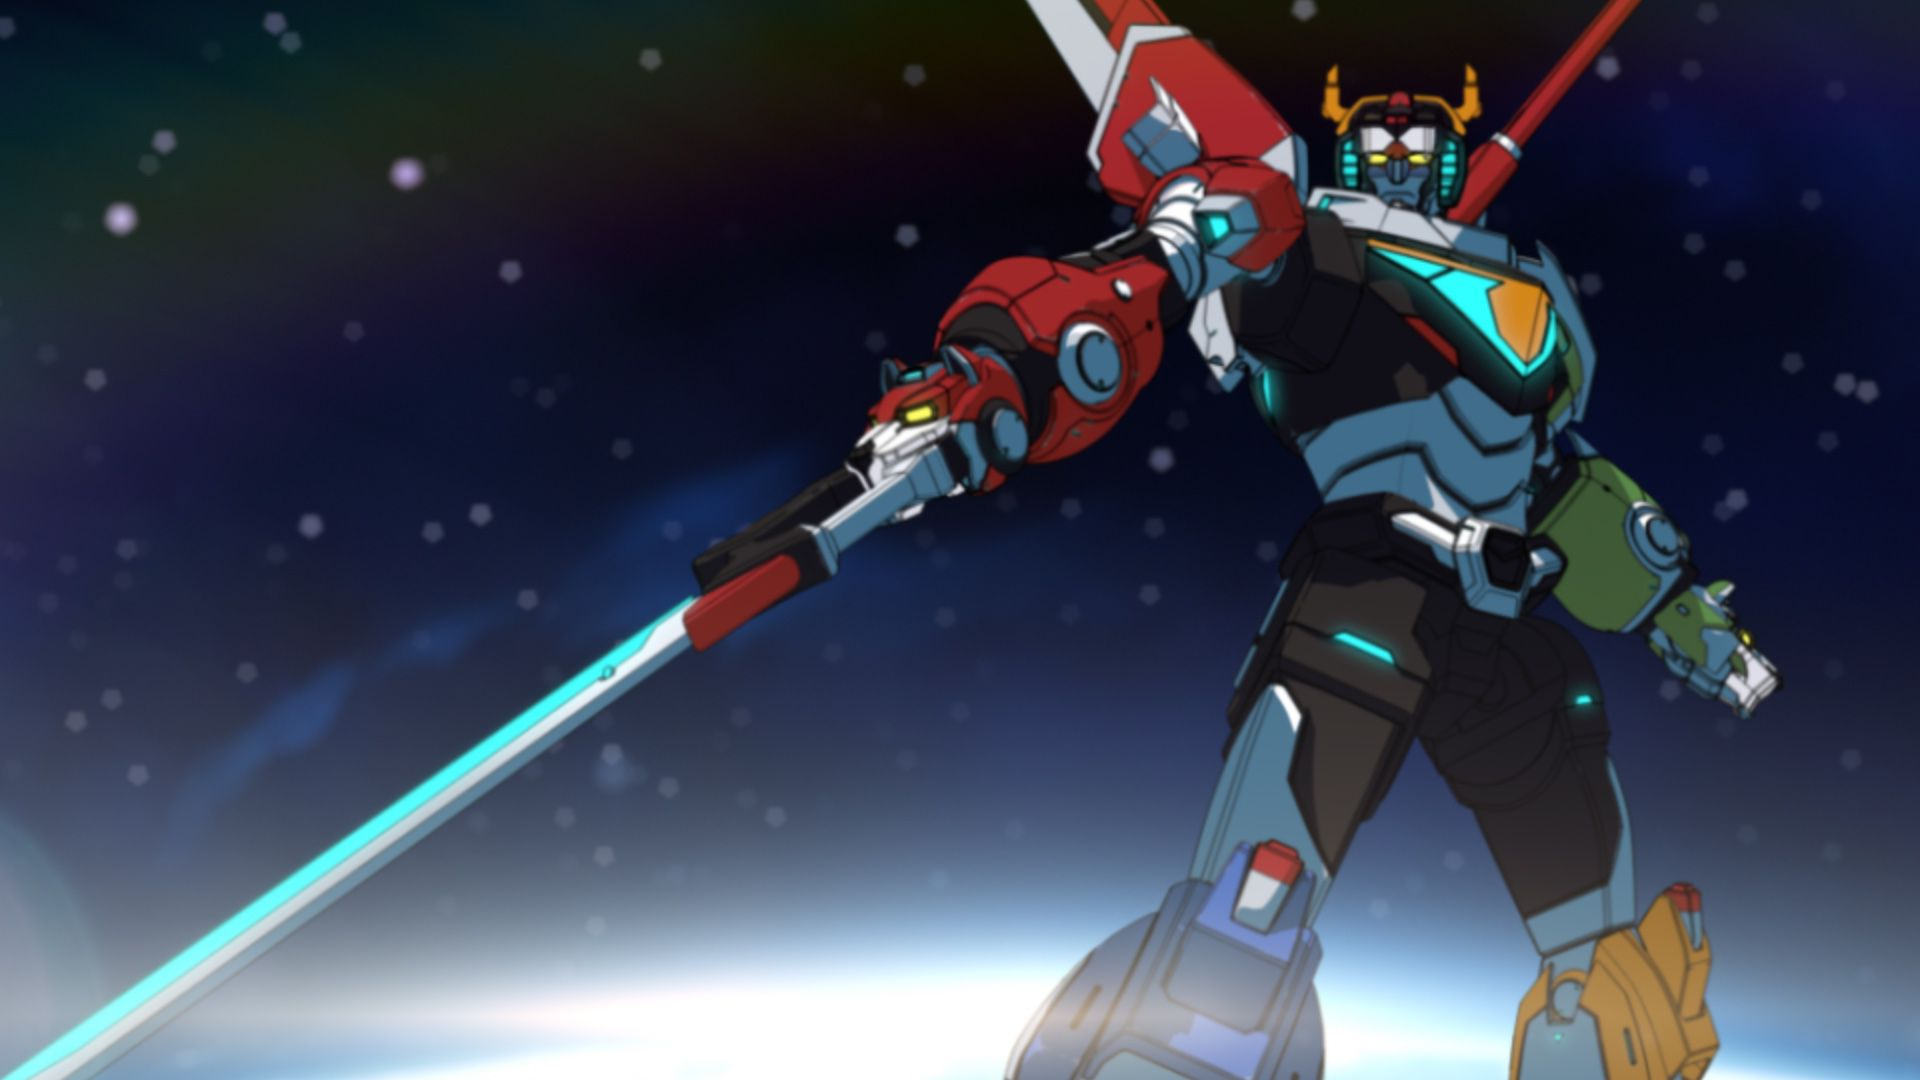 Anime Fighting Wallpaper Voltron Legendary Defender Recensione Della Stagione 1